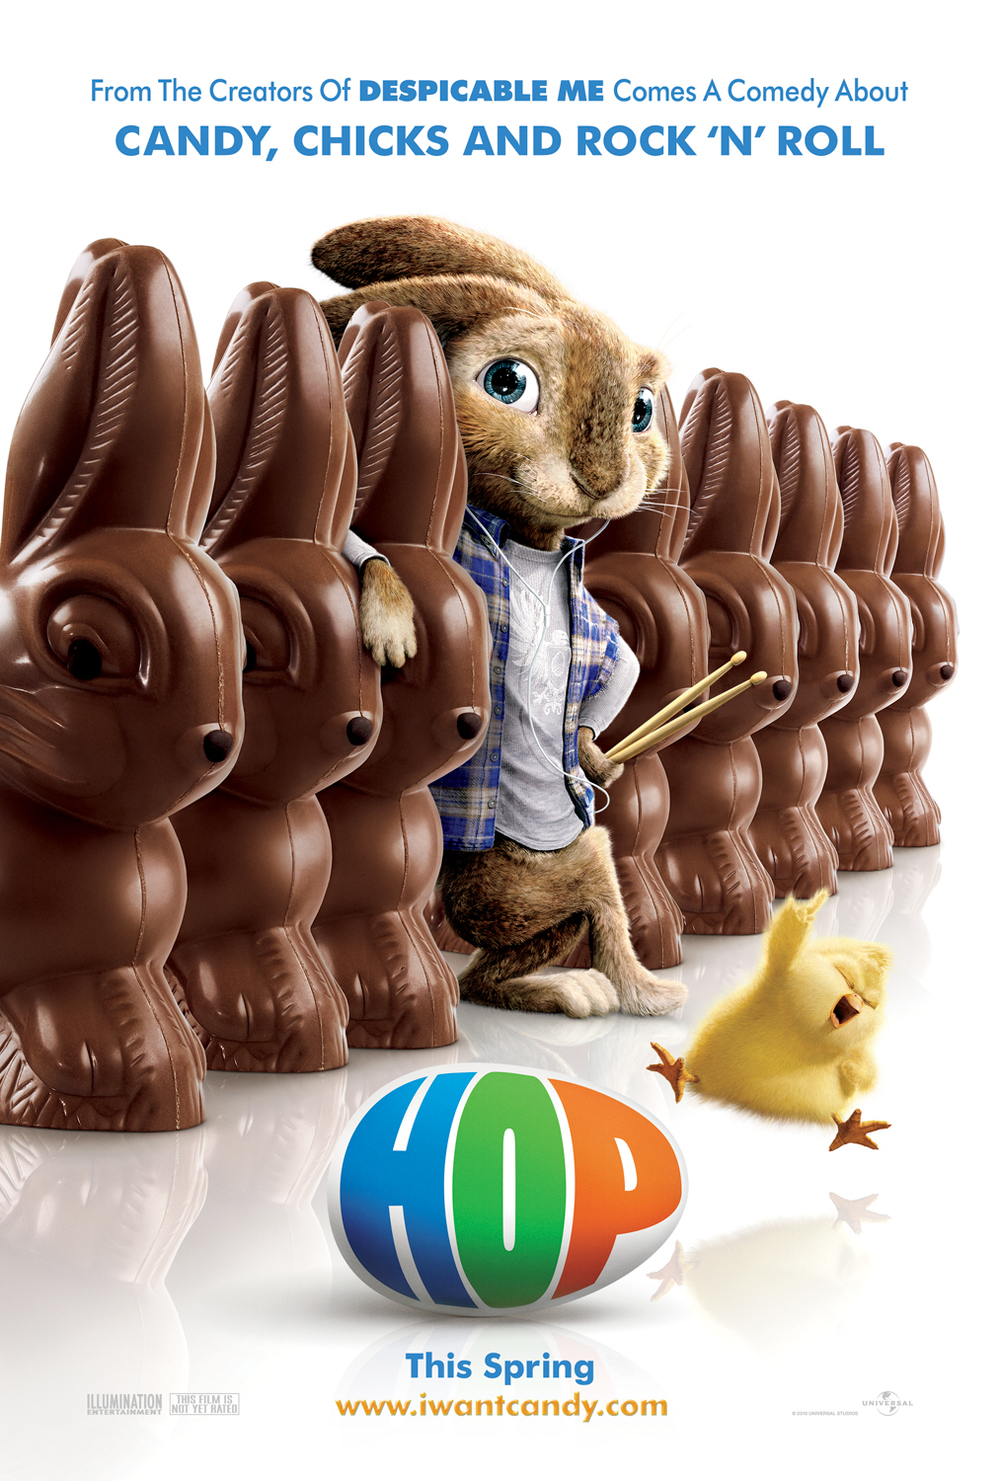 hop-movie-poster-01.jpg